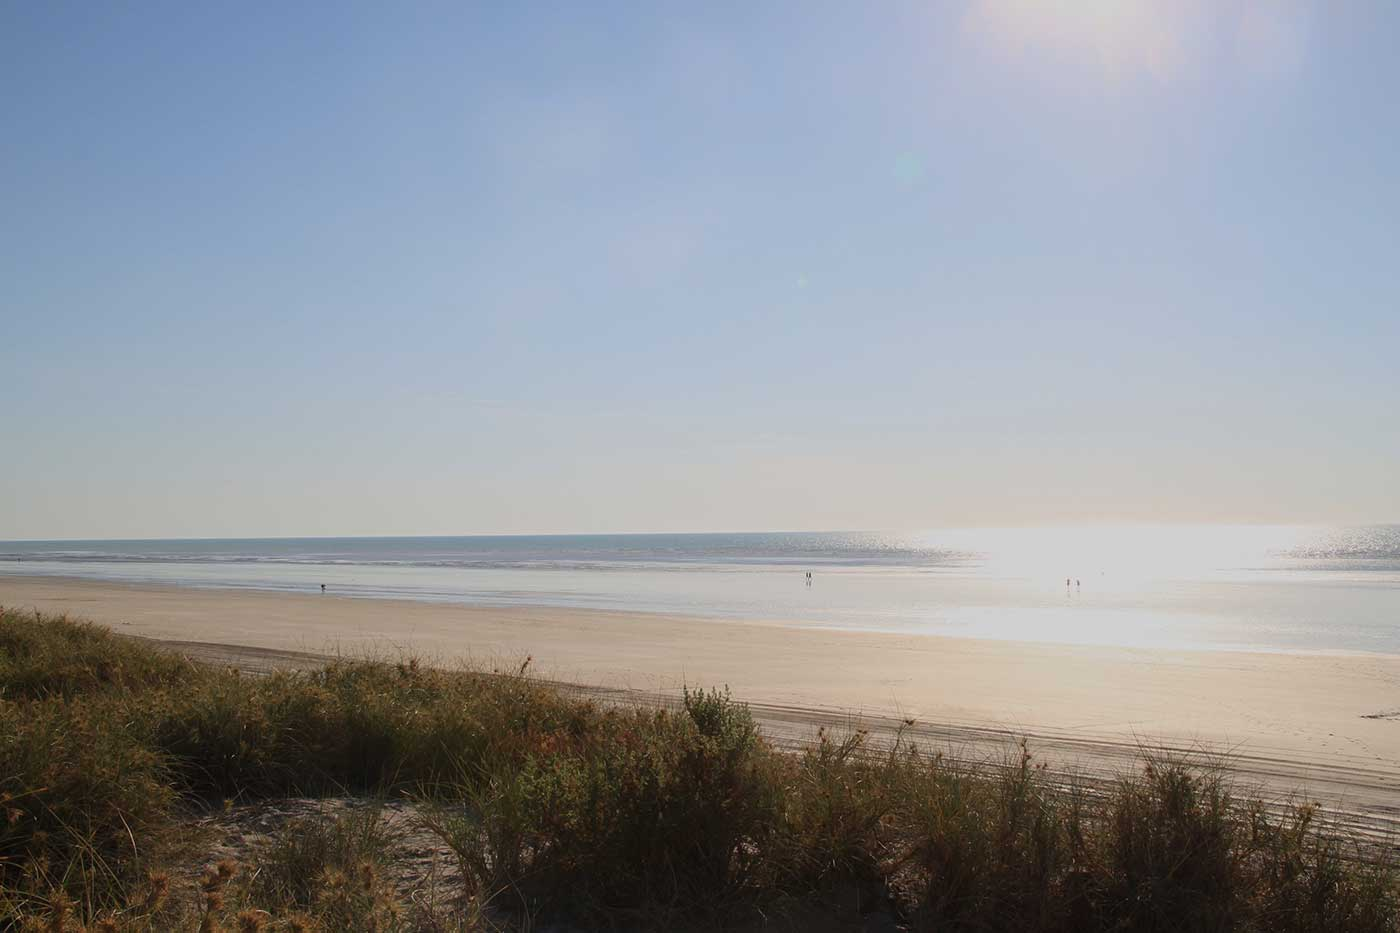 Colour photograph showing a broad stretch of beach with water and smooth sand stretching to low dunes. - click to view larger image